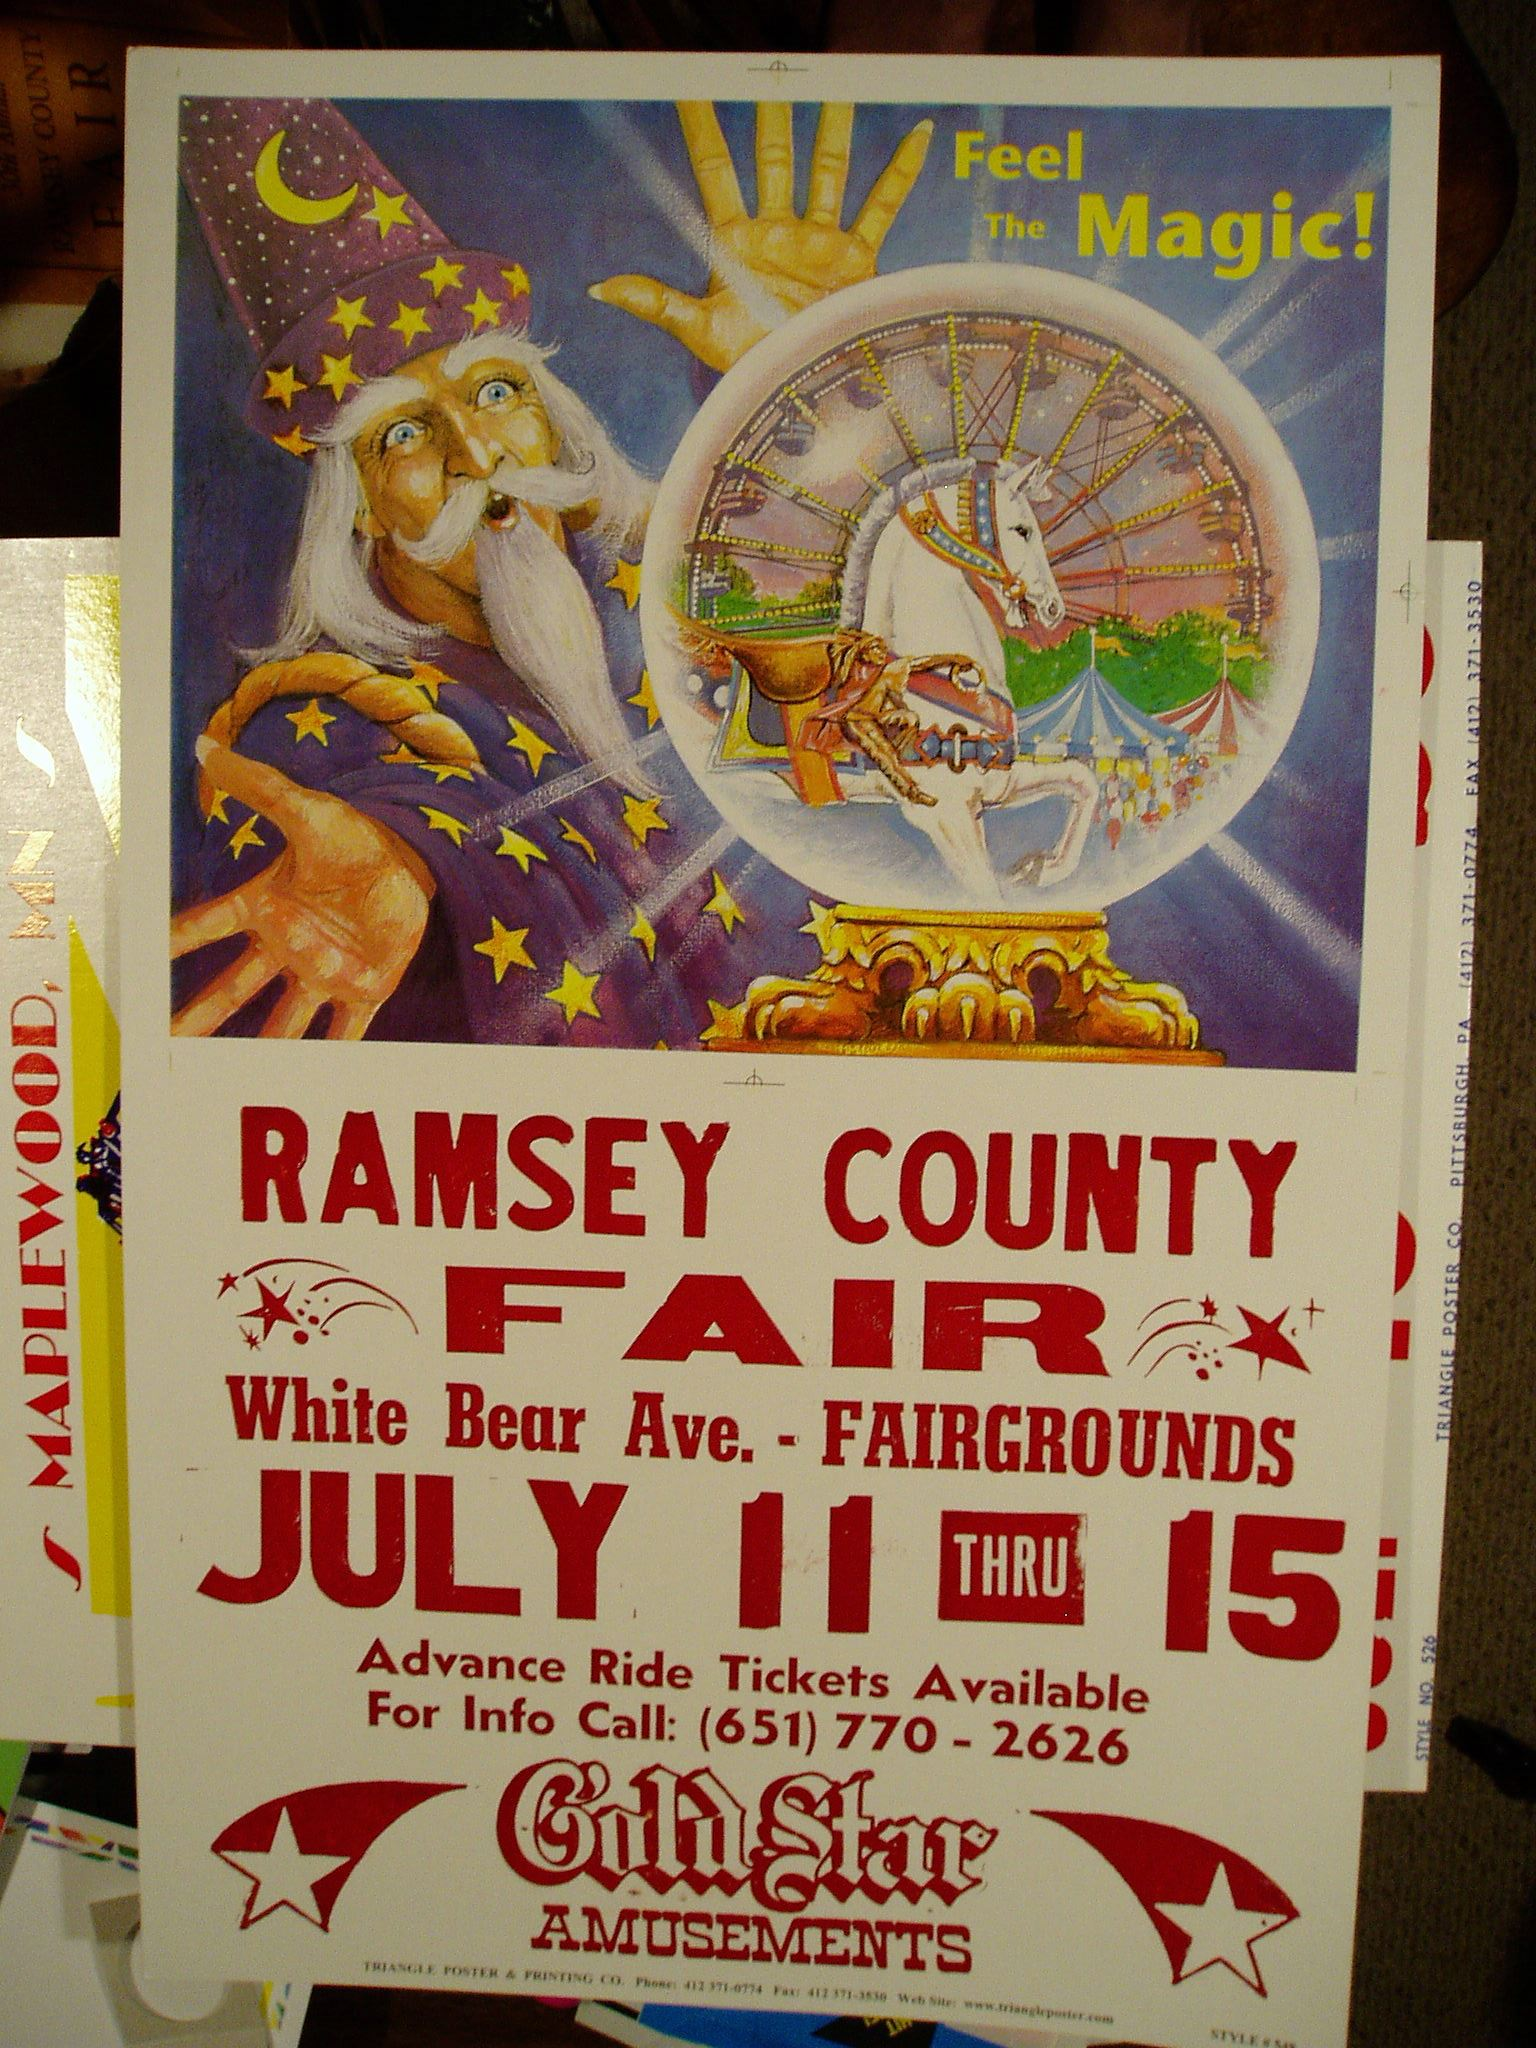 The Ramsey County Fair